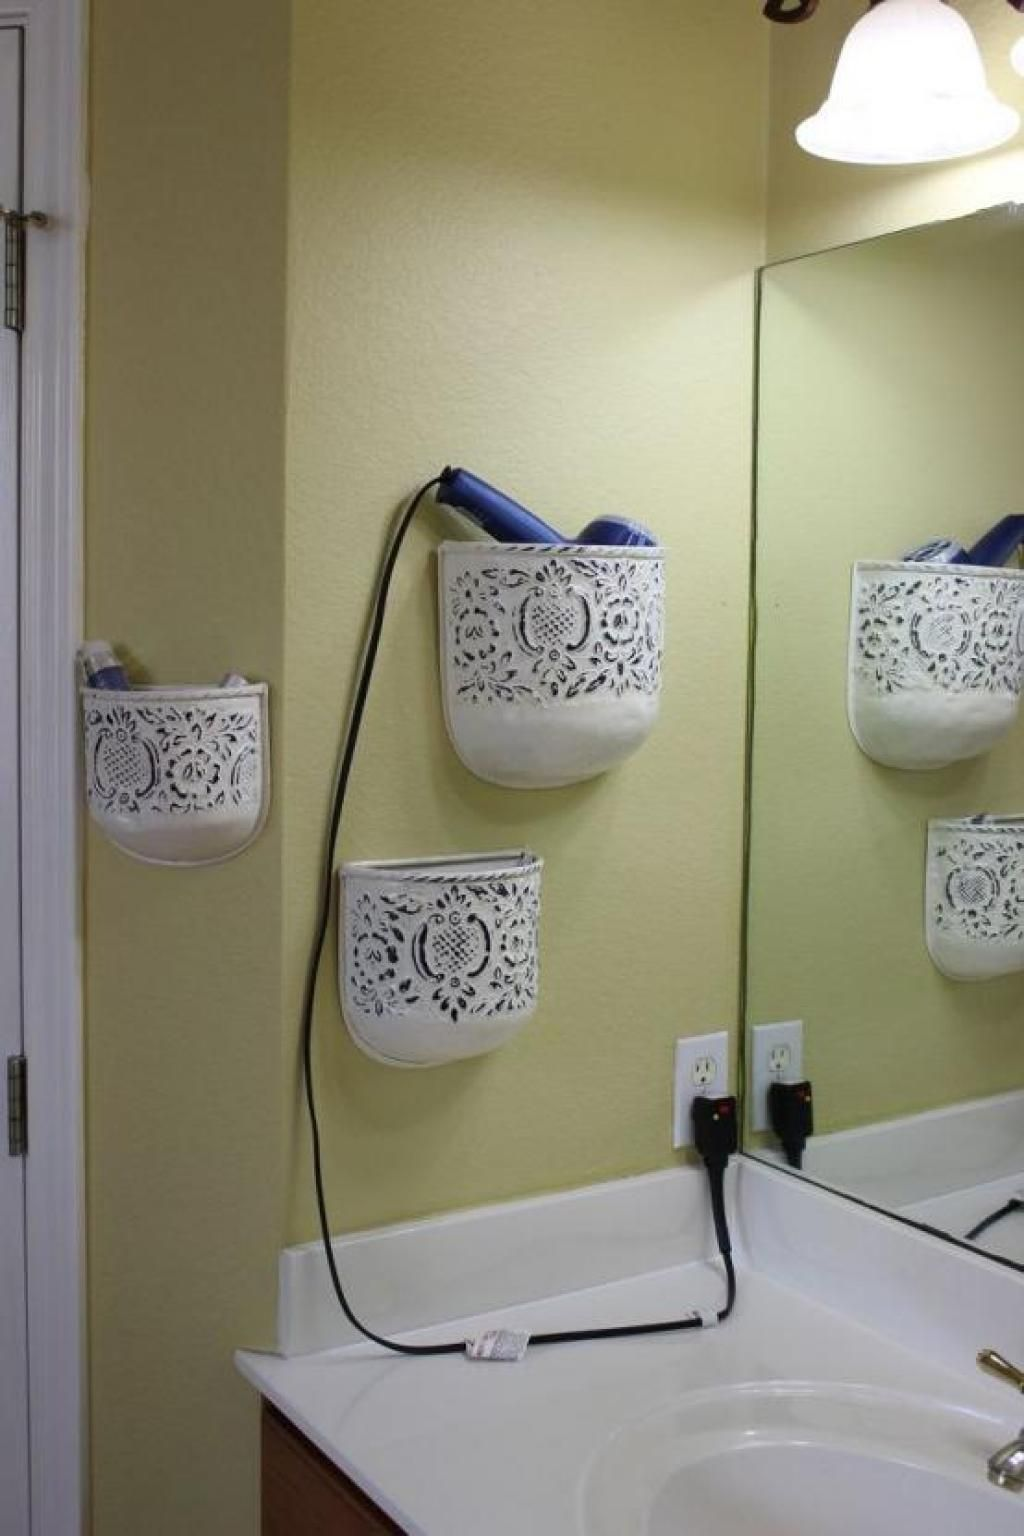 Practical Bathroom Storage Ideas Hair Dryer Storage And Bathroom Tools With  White Hanging Lighting Genius And